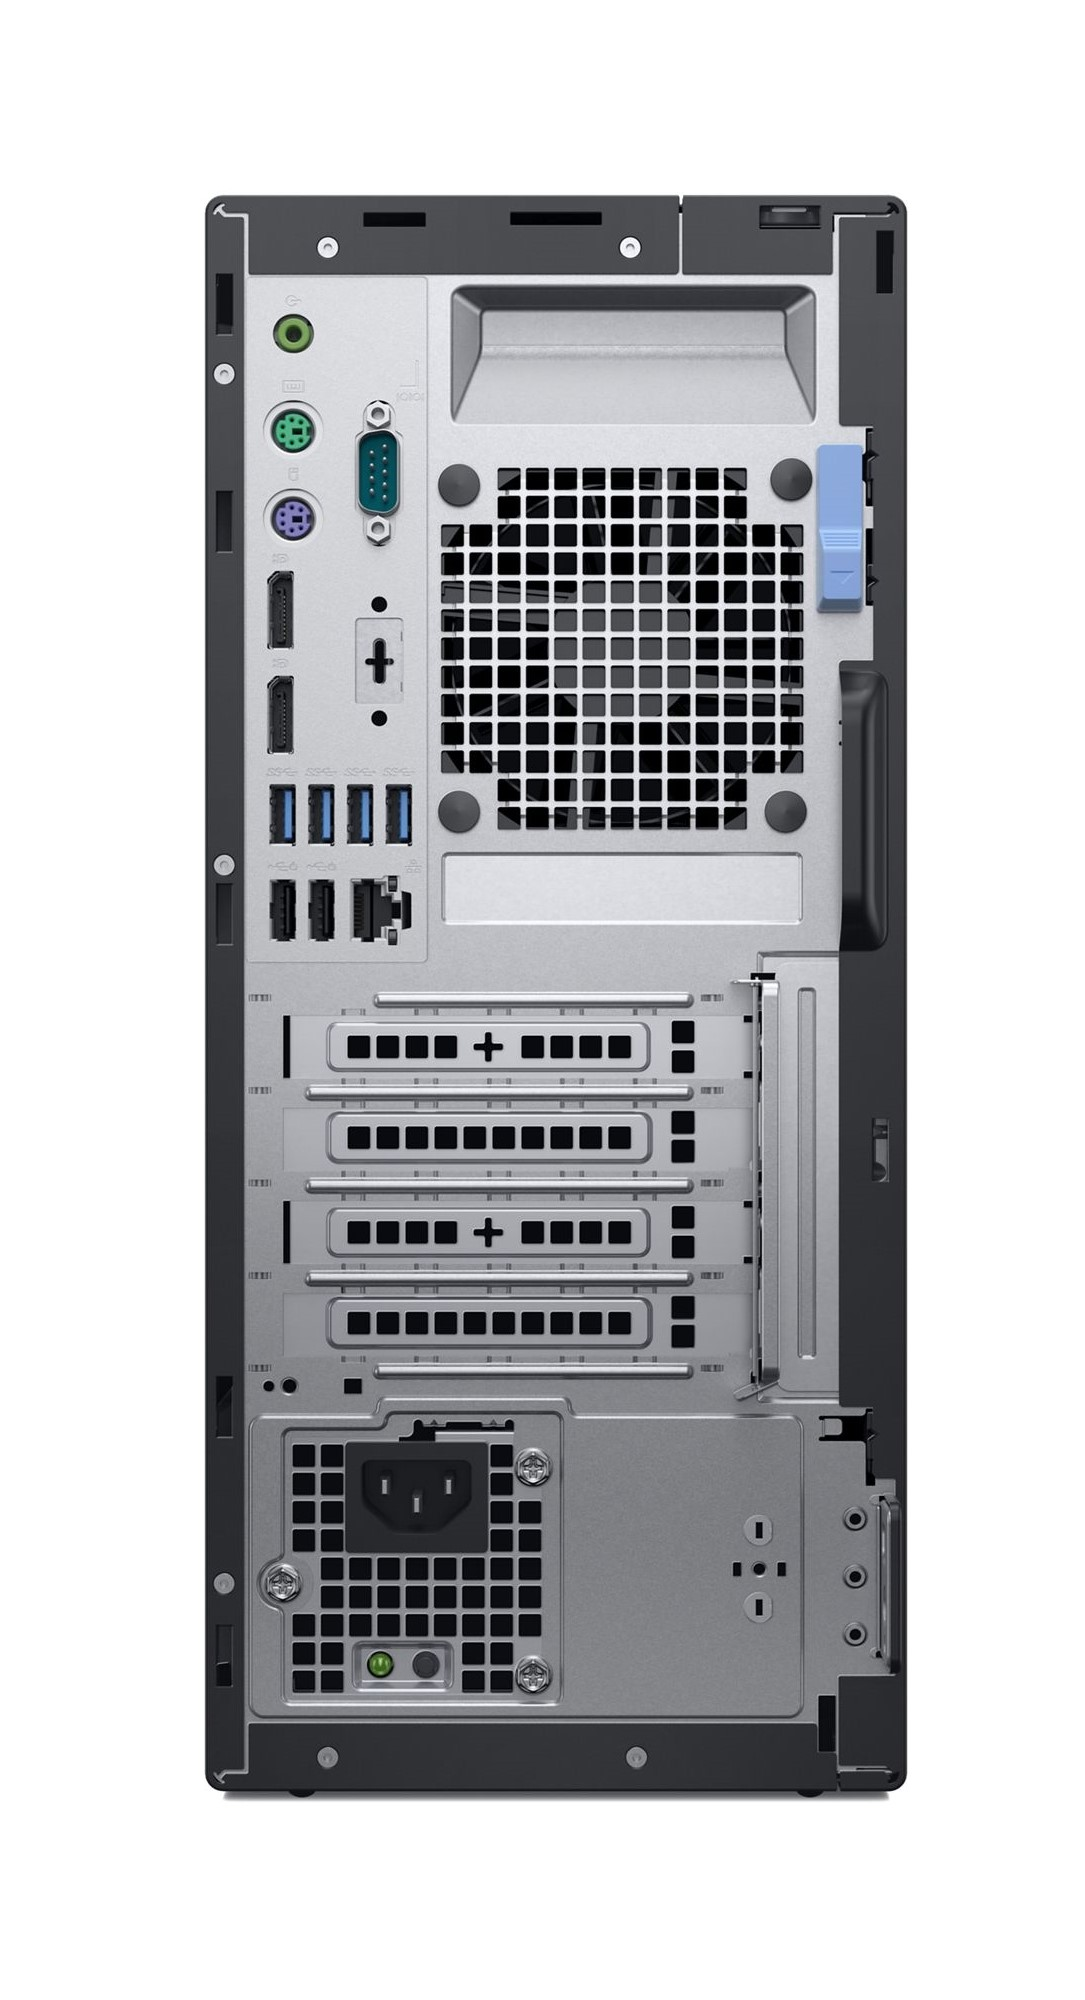 מחשב Intel Core i7 Dell OptiPlex 7060 MT OP-RD33-10803 Mini Tower דל